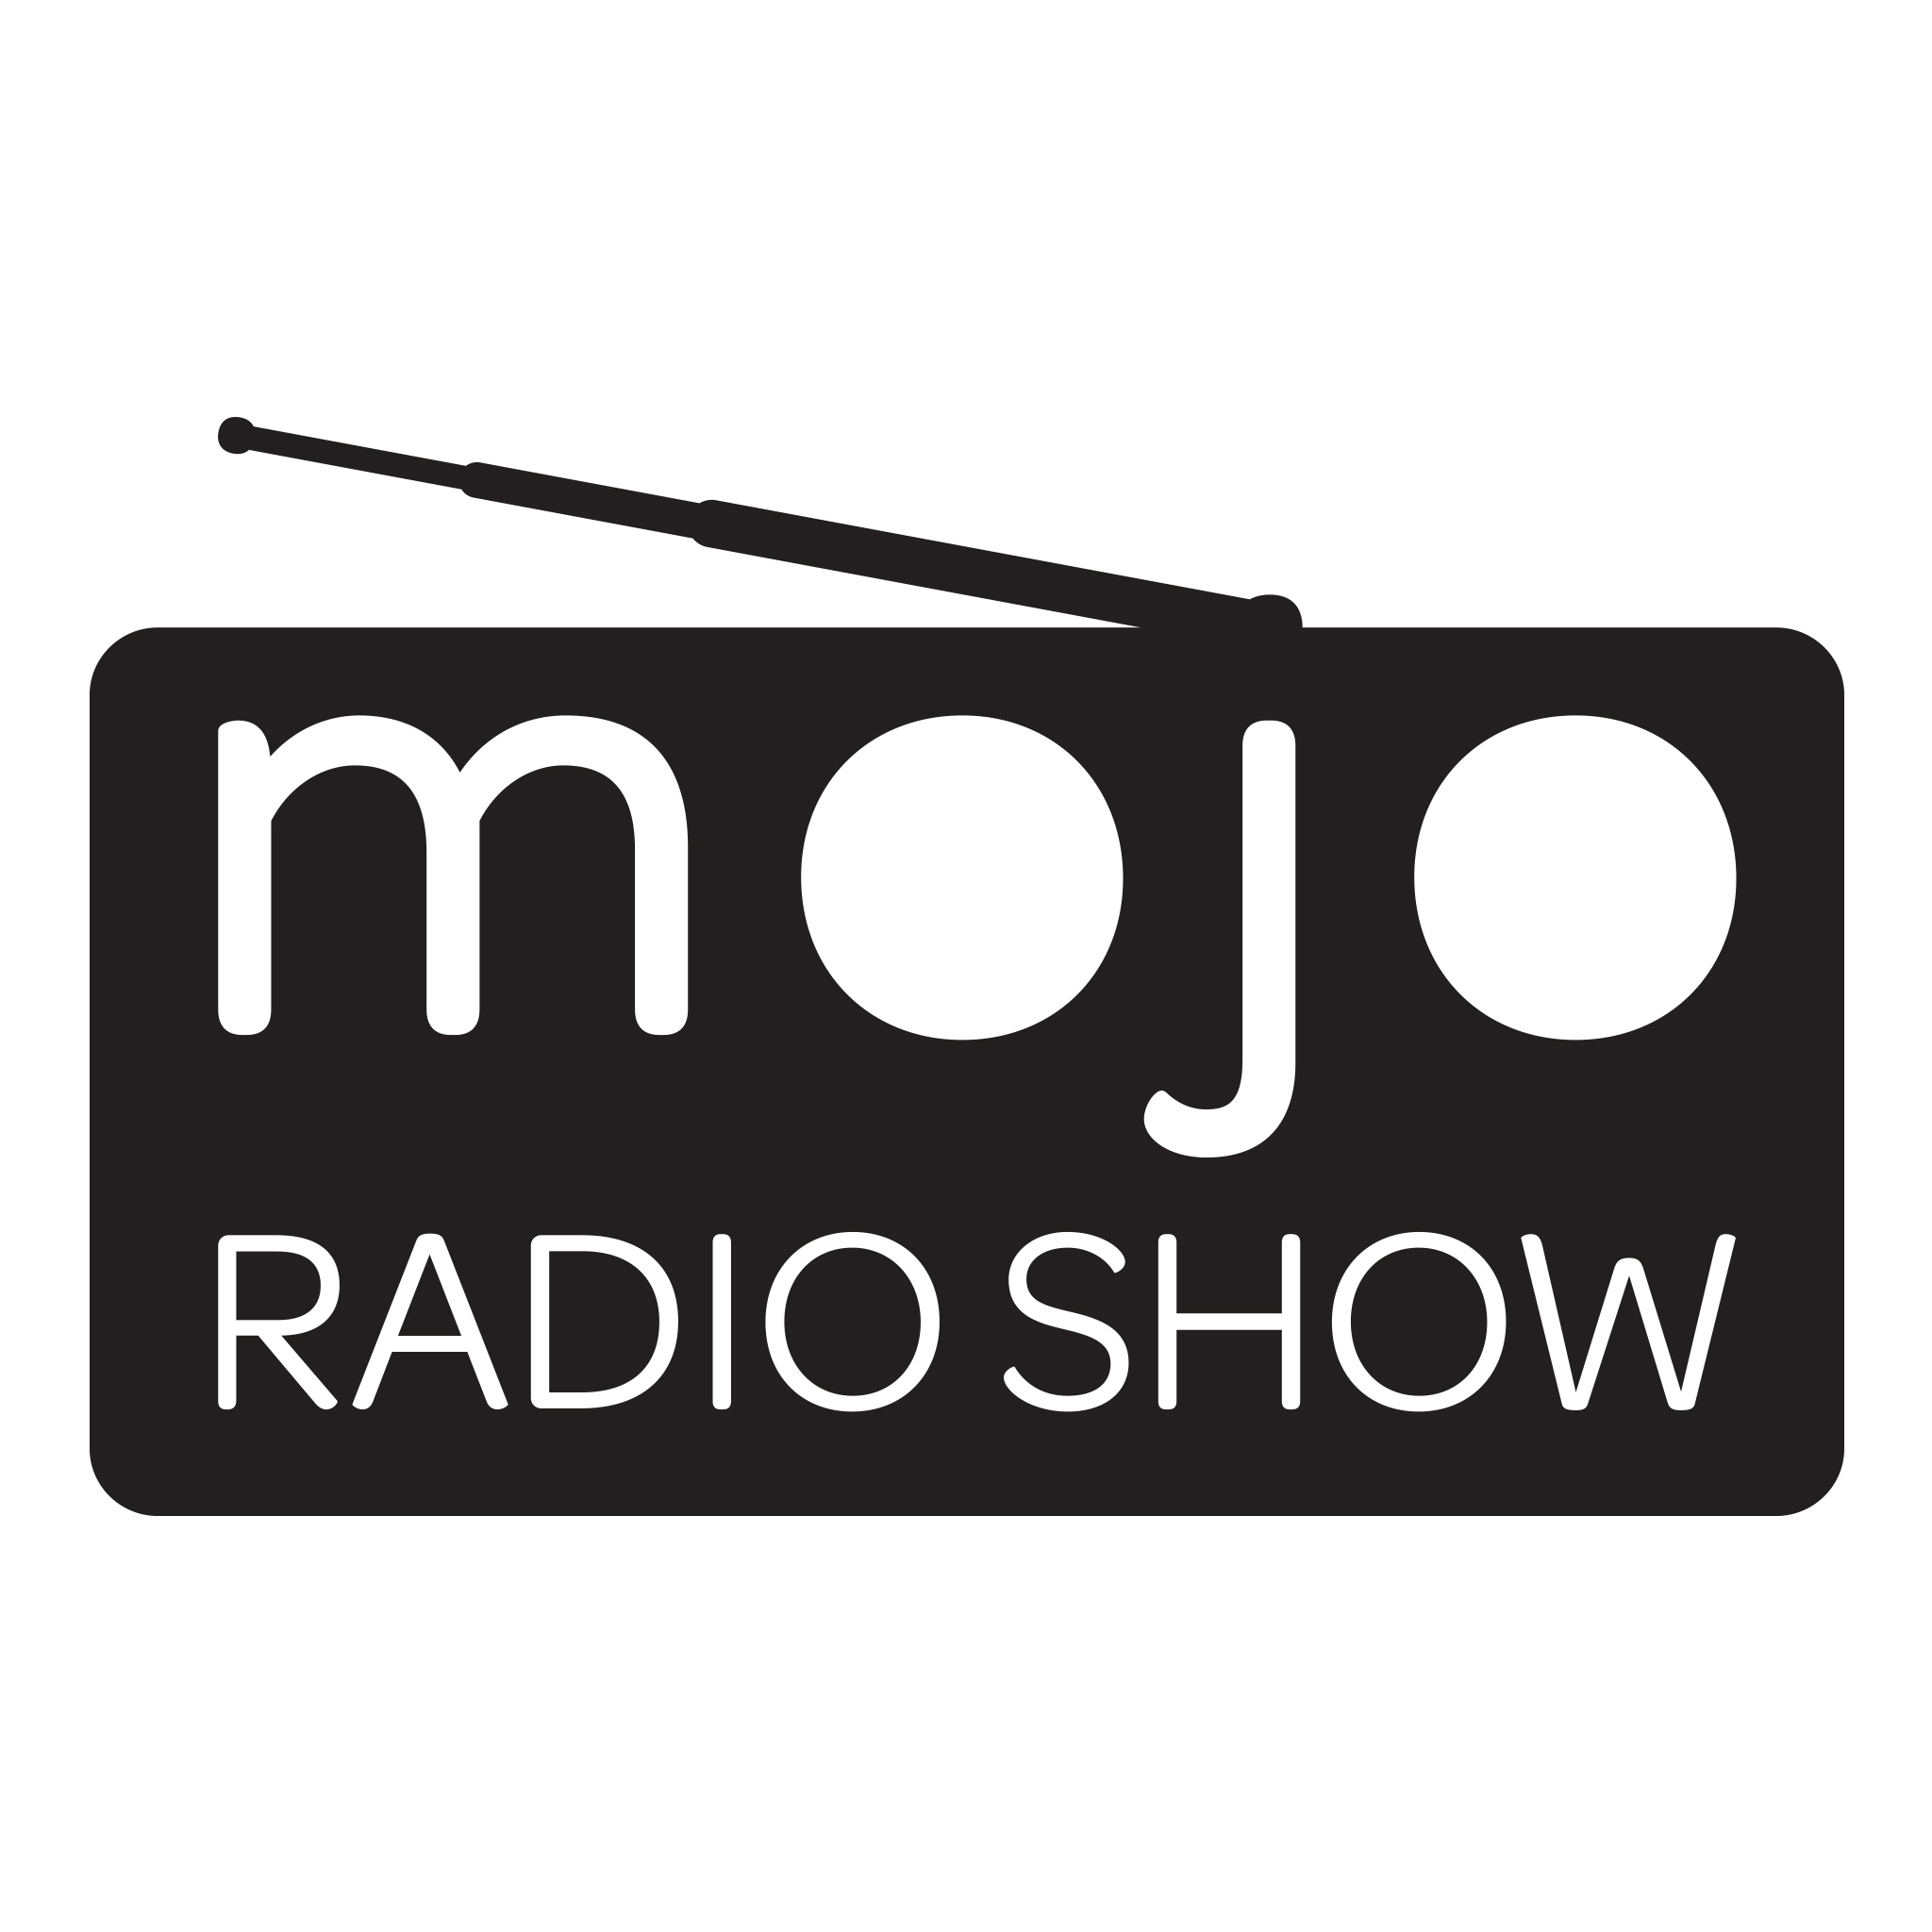 Artwork for The Mojo Radio Show EP 187: How To Be A Great Leader or Coach Thru Your Questions - Michael Bungay Stanier